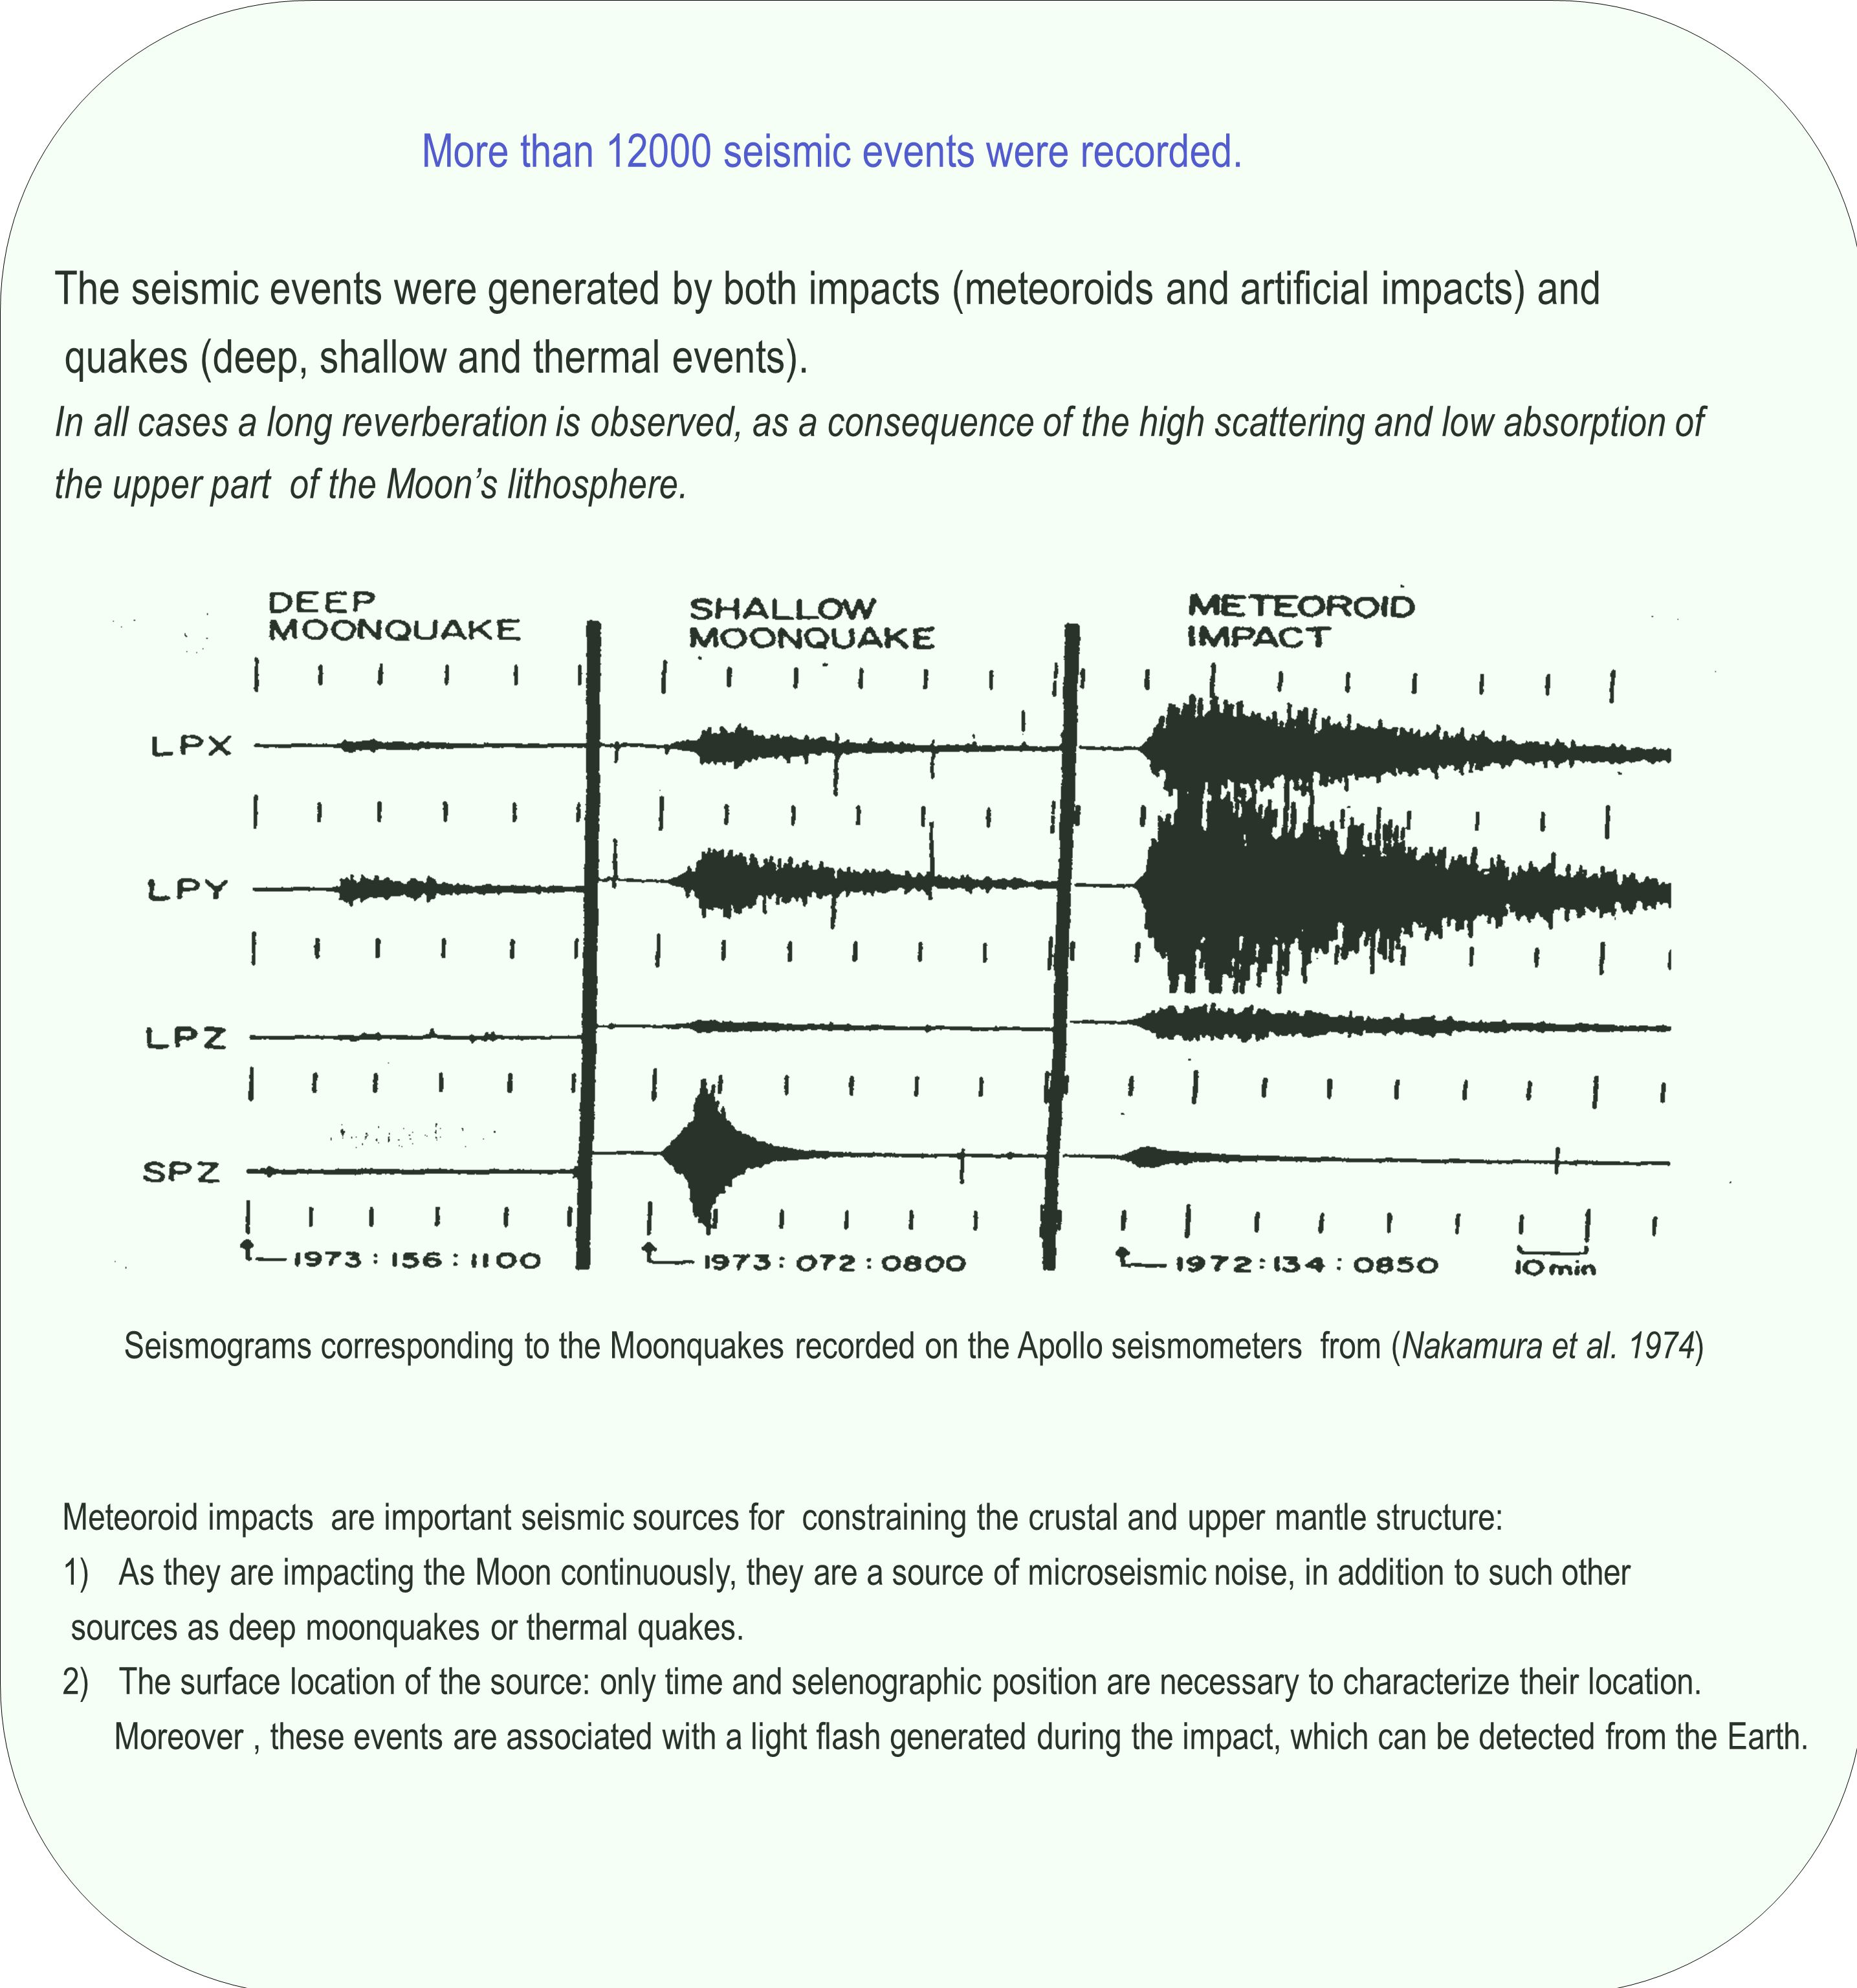 More than 12000 seismic events were recorded.